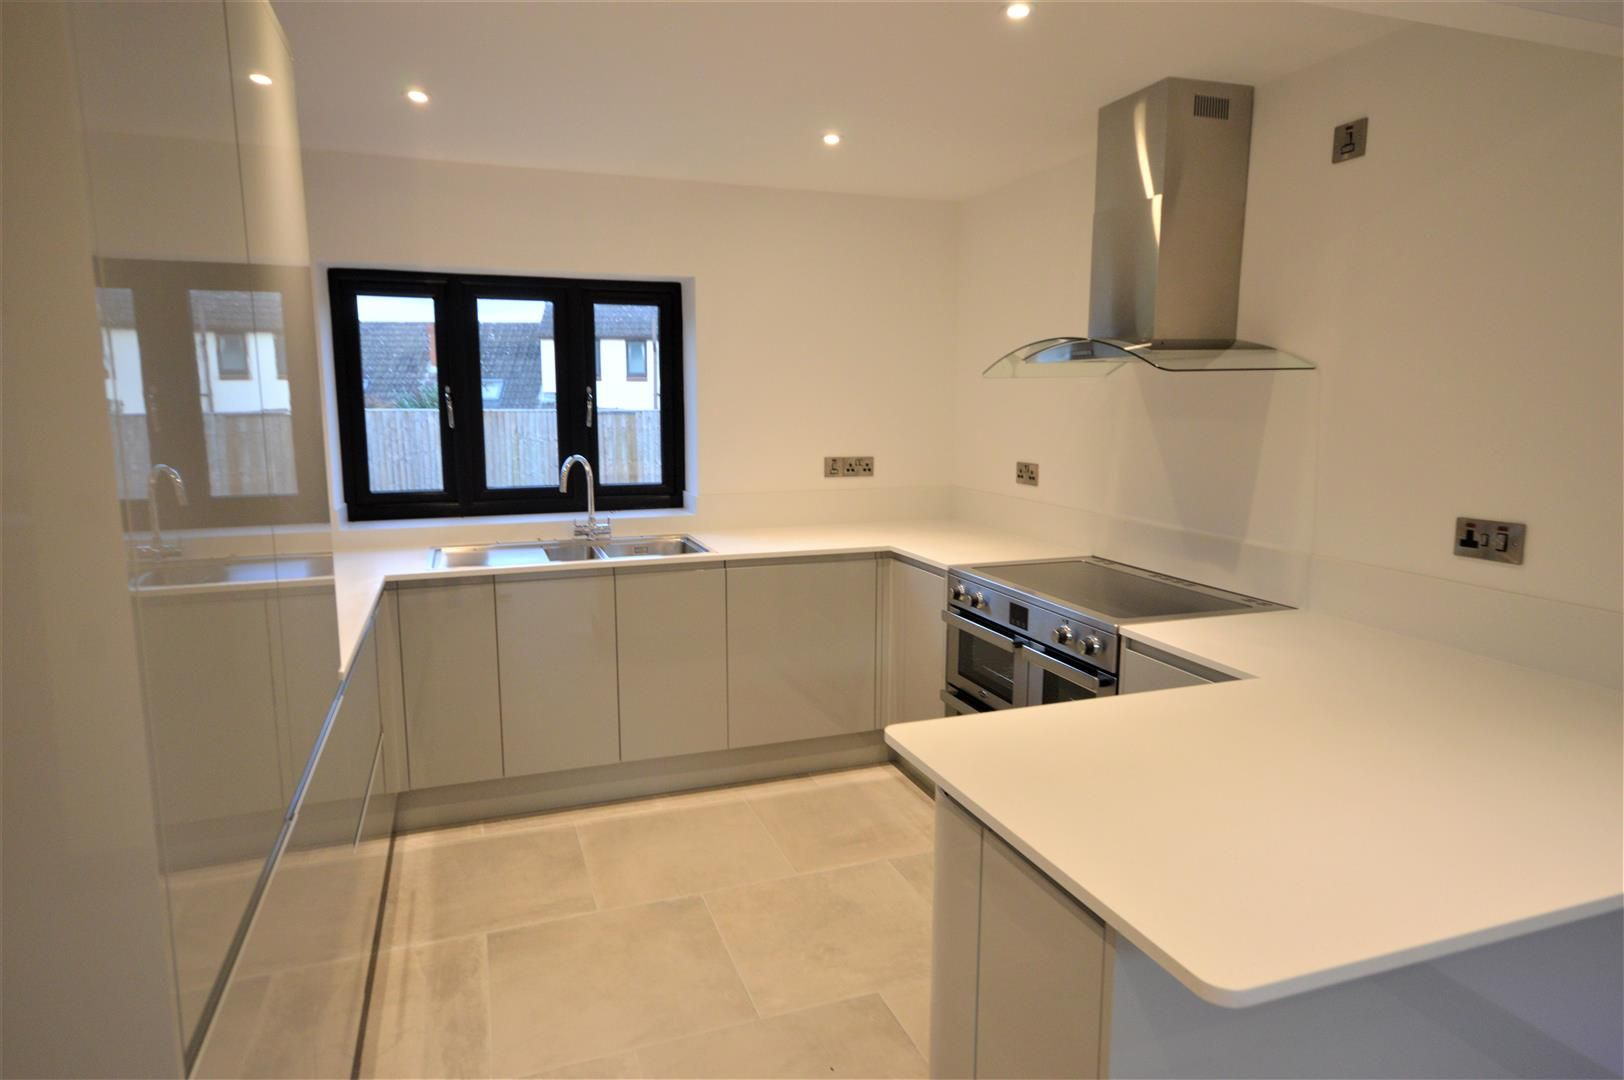 4 bed detached for sale in Brimfield 4